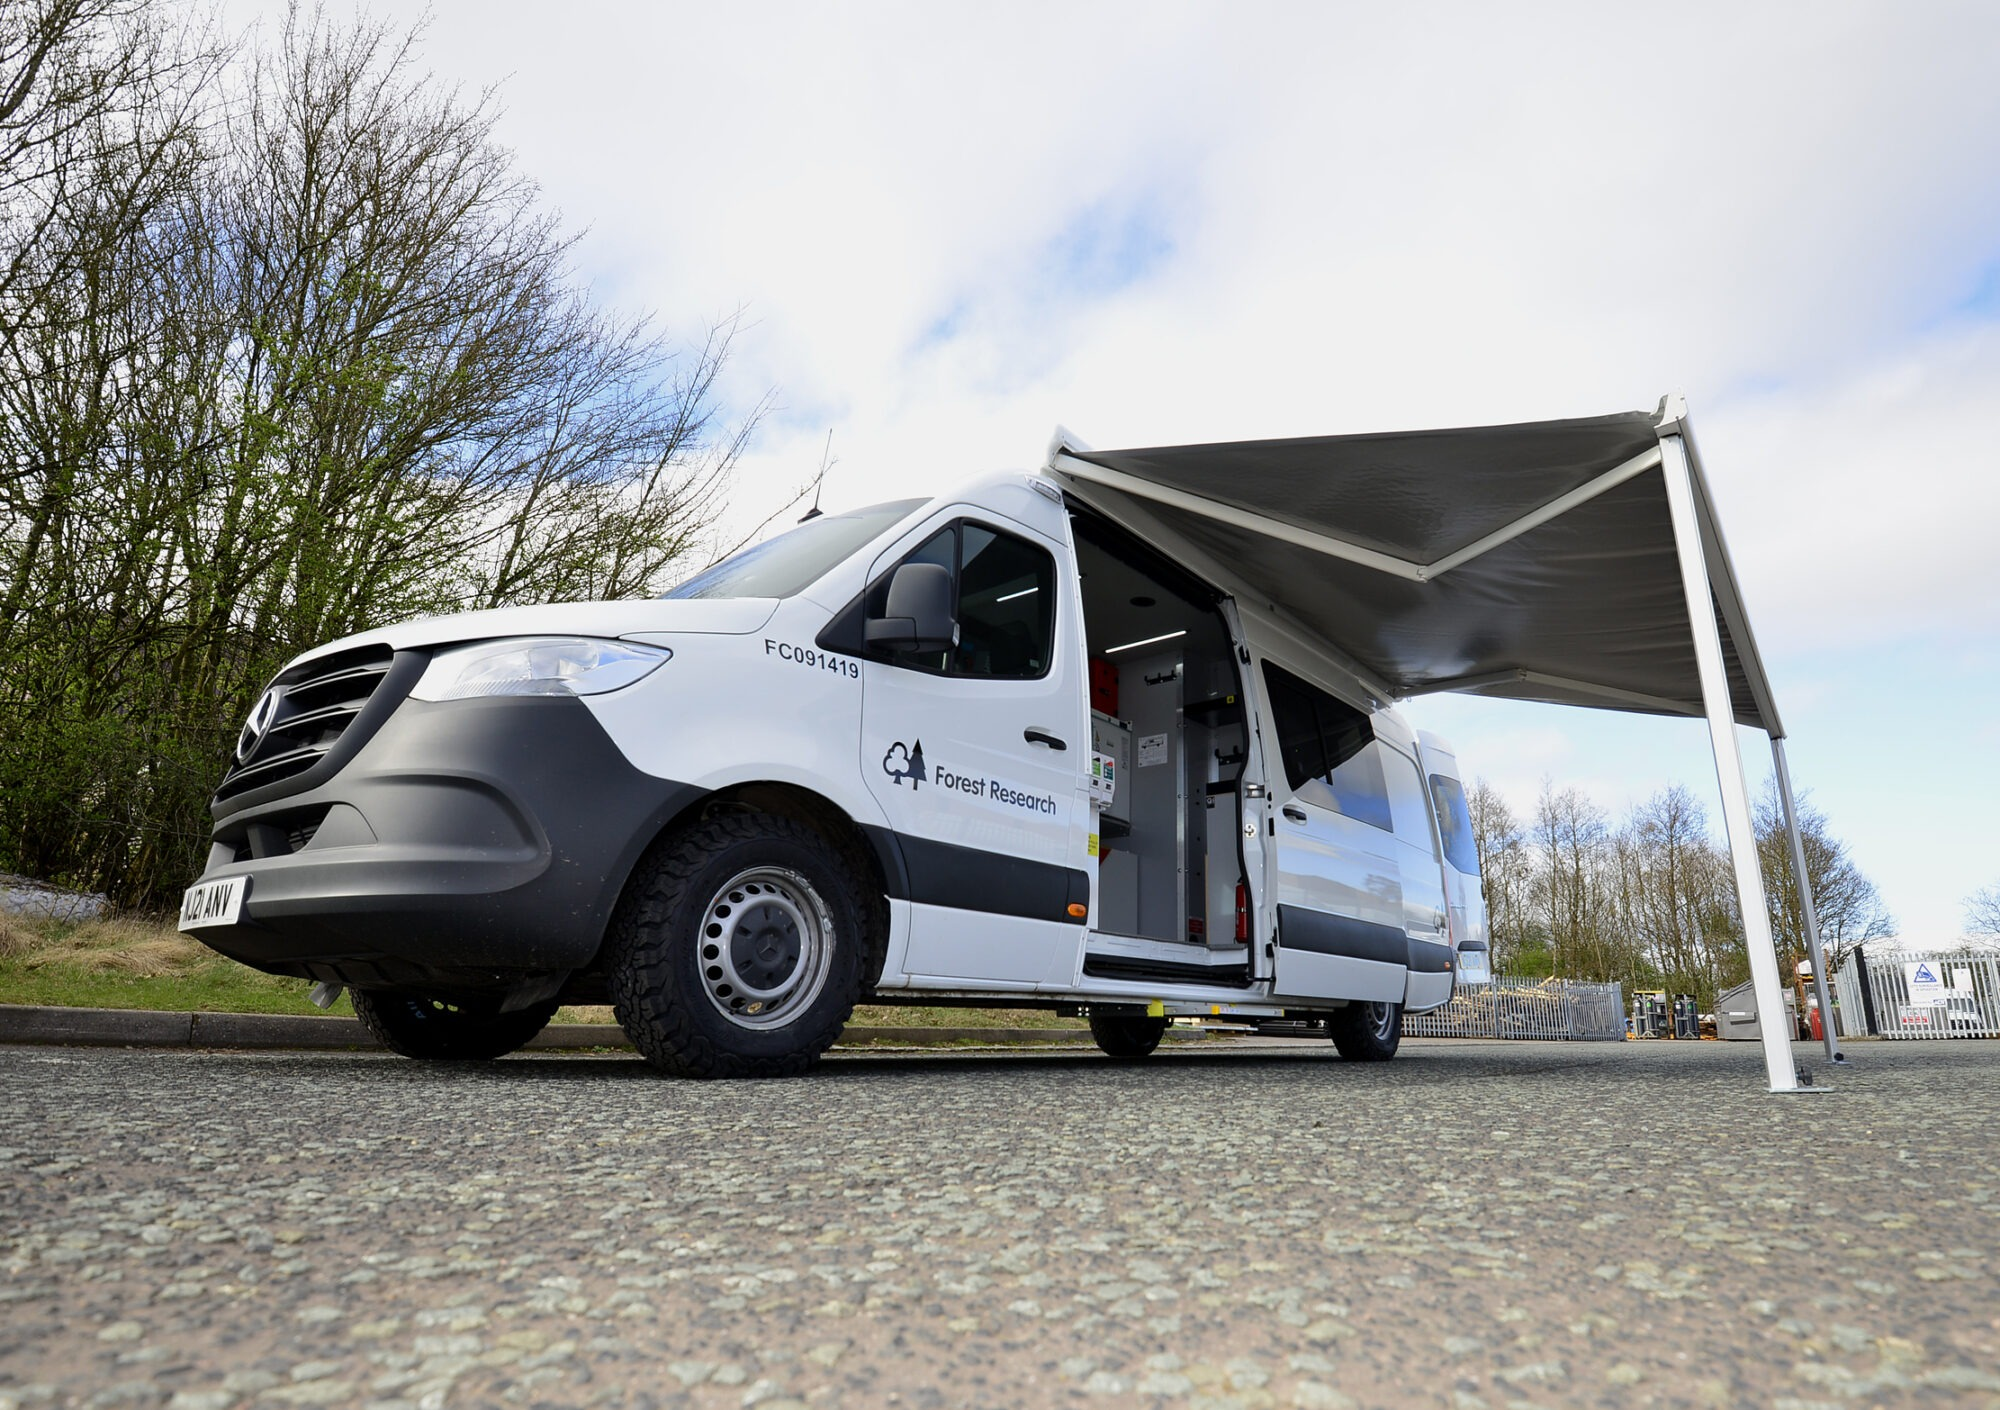 Mobile Facilities Mobile Facilities for your workforce